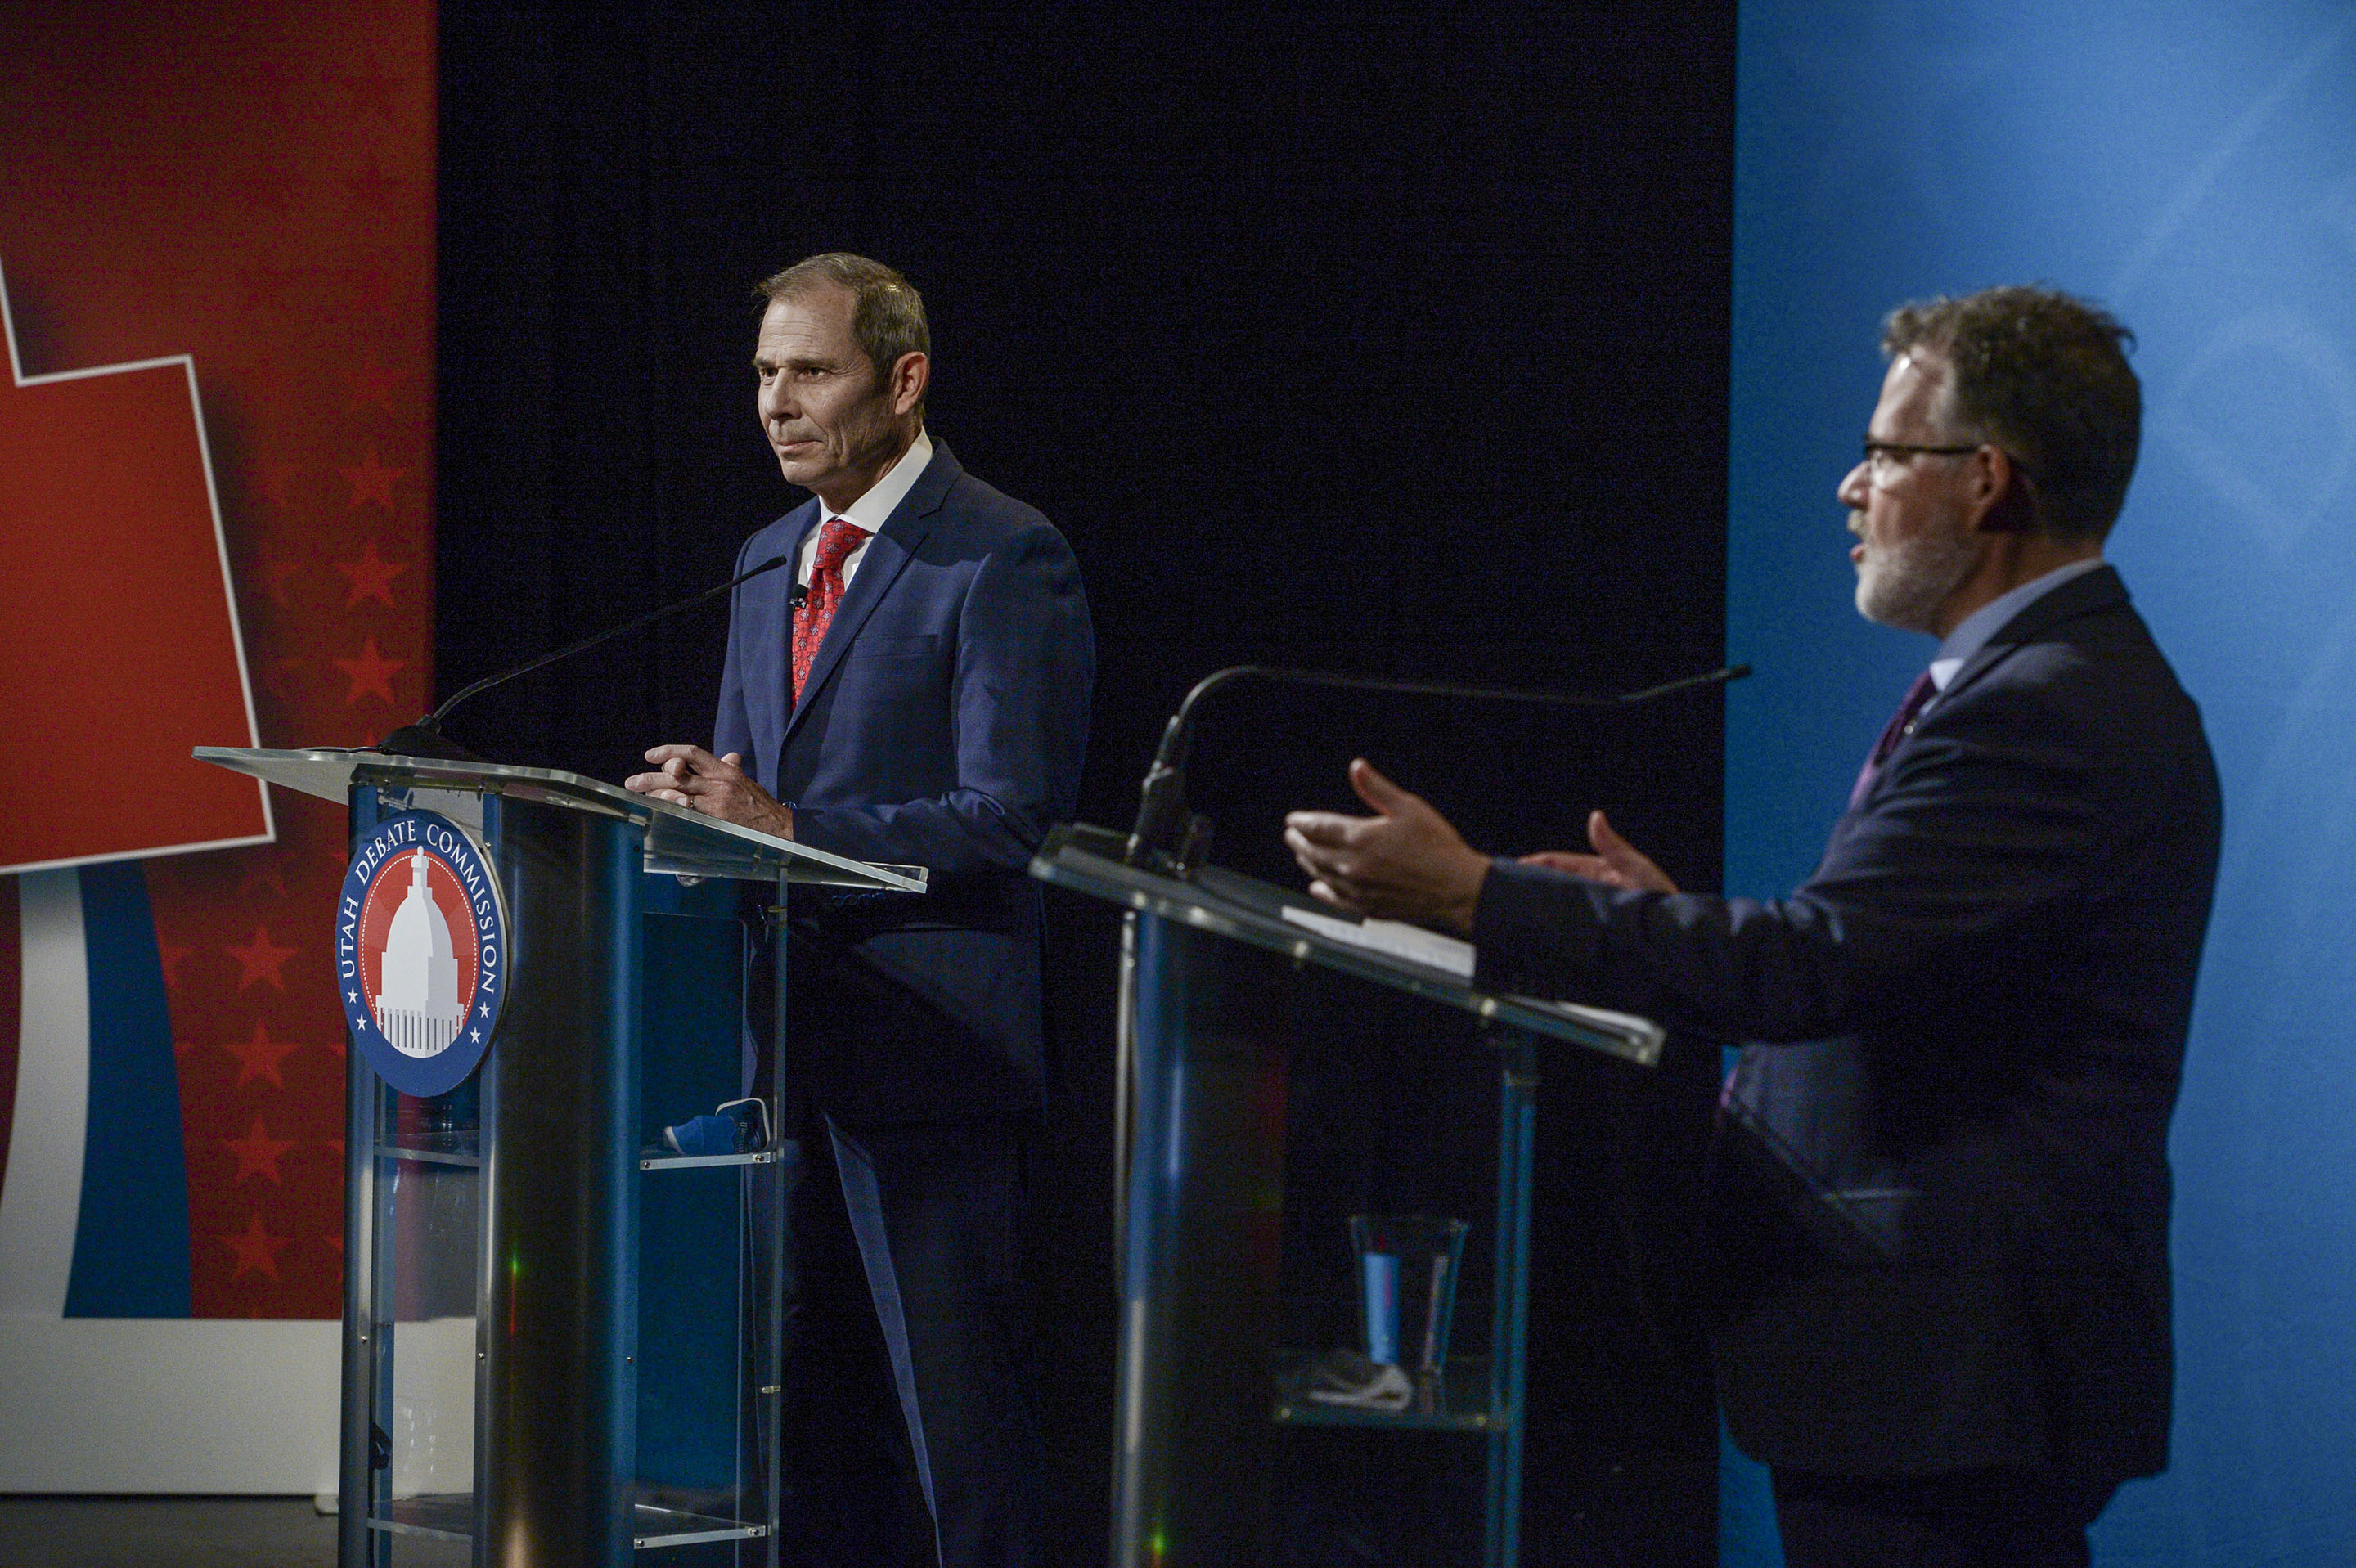 Utah's 3rd Congressional District candidates Rep. John Curtis, R-Utah, and Democrat Devin Thorpe participate in a debate at the Triad Center in Salt Lake City, Oct. 15, 2020.